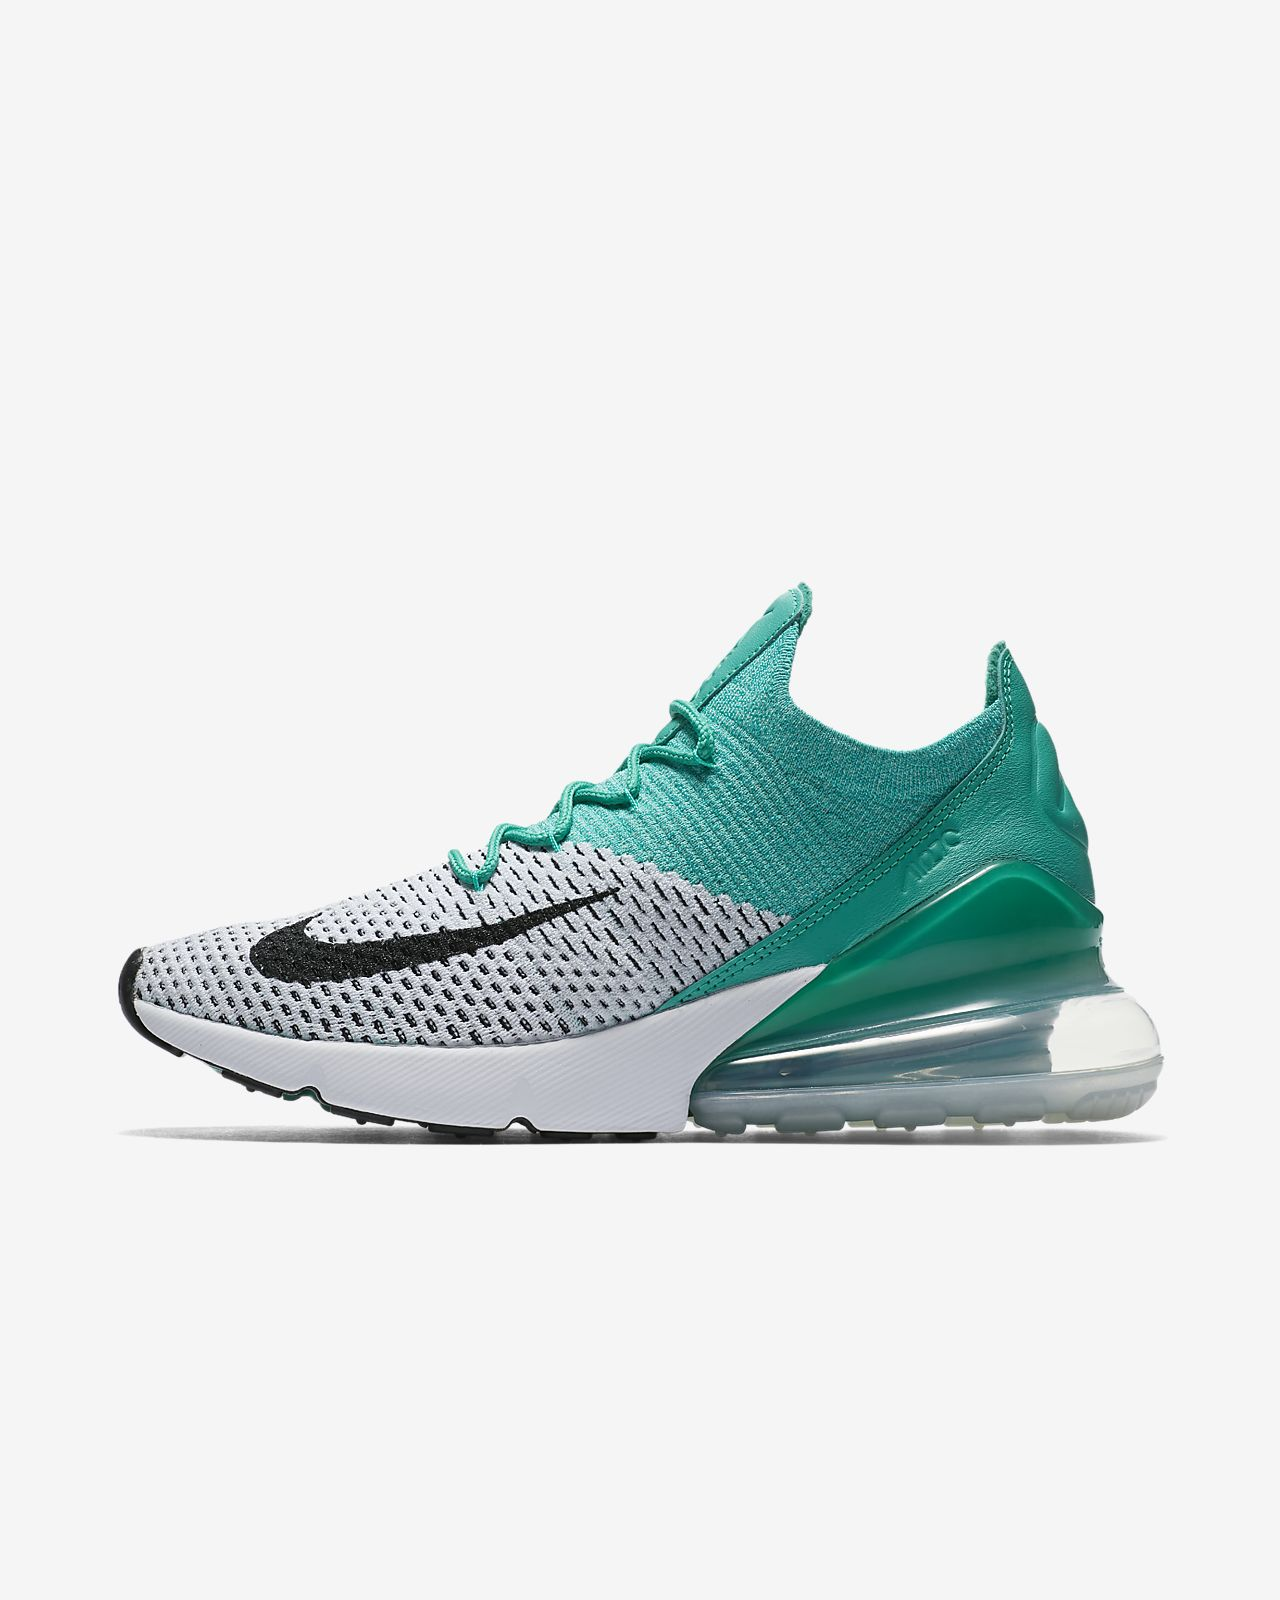 b91602ce2e9 Nike Air Max 270 Flyknit Women s Shoe. Nike.com GB